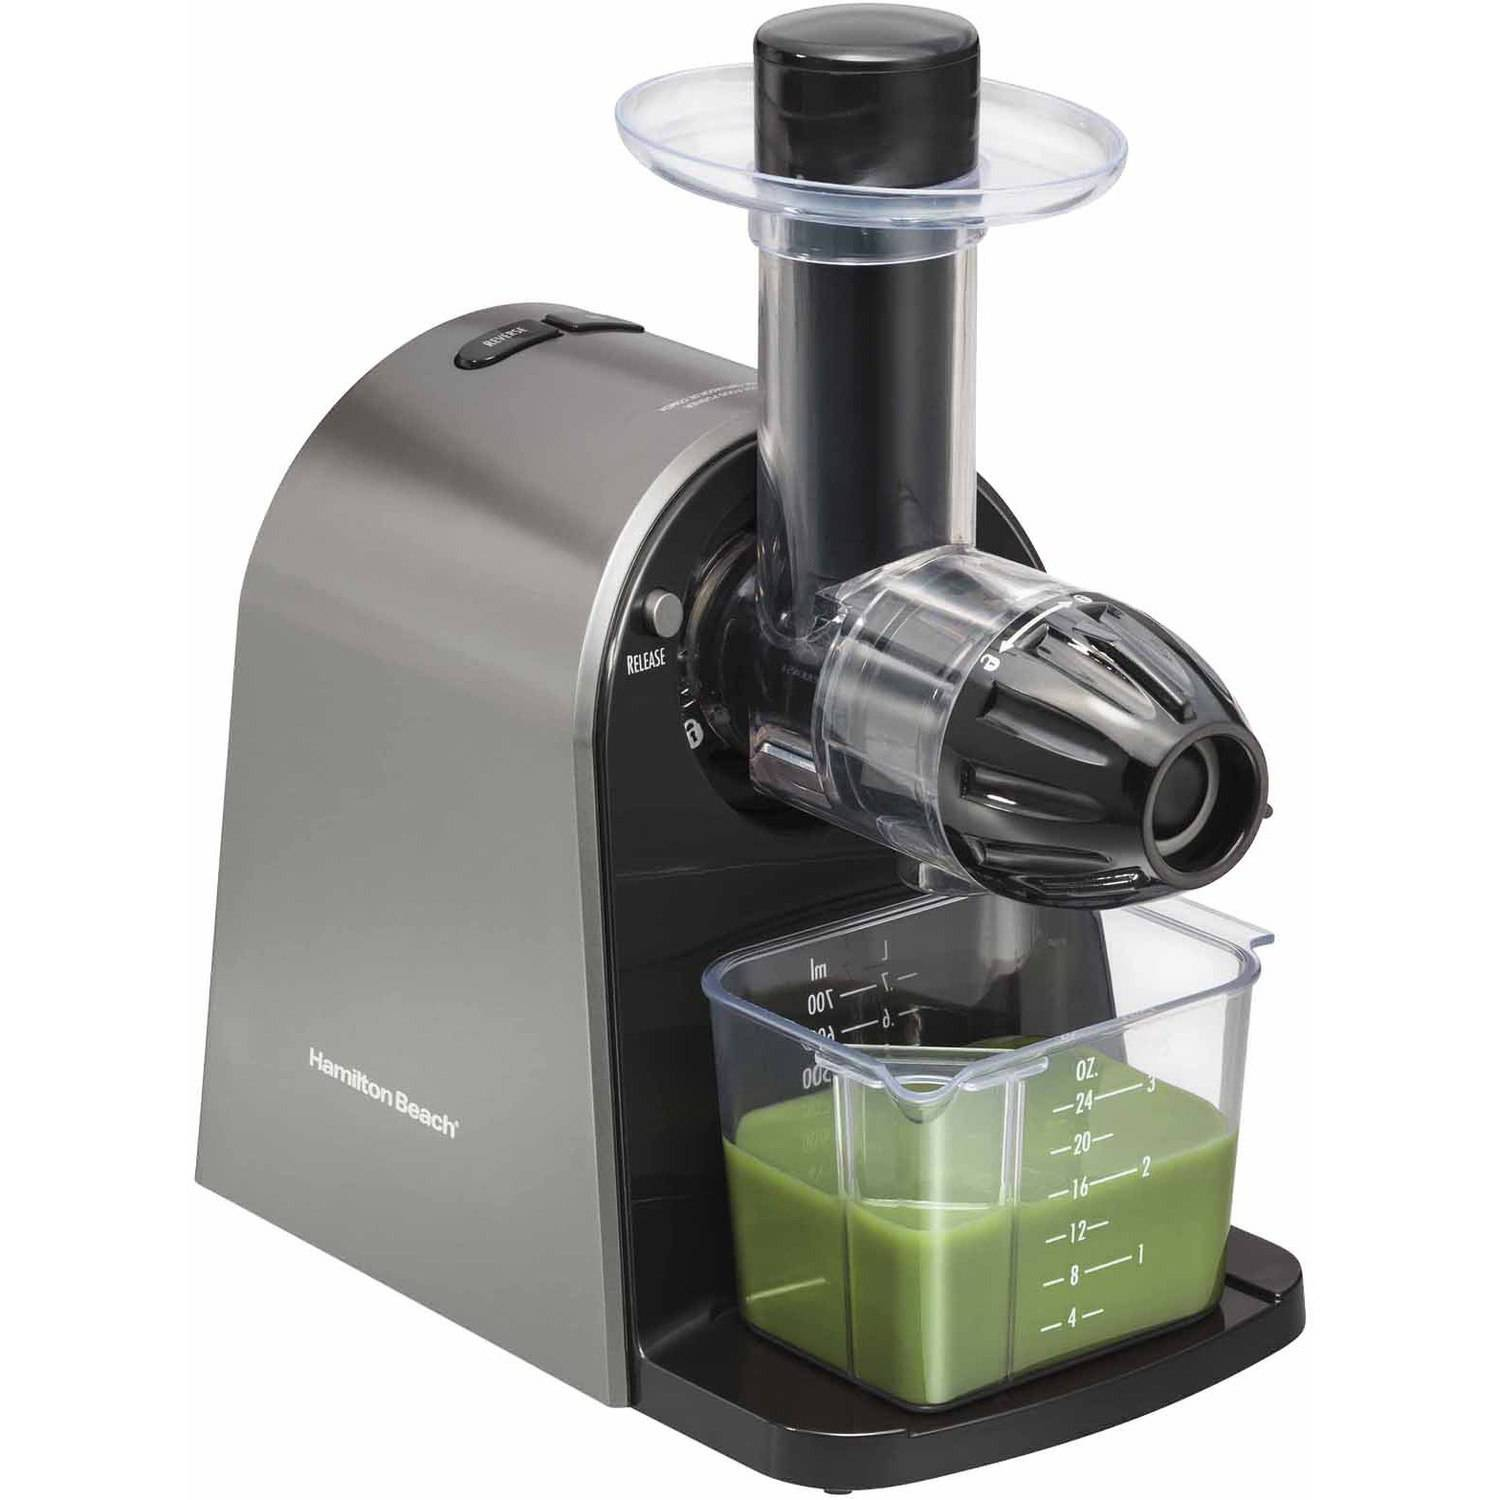 Slow Juicer Or Fast Juicer : Cold Press Juicer Machine - Masticating Juicer Slow Juice Extractor Maker Electric Juicing ...